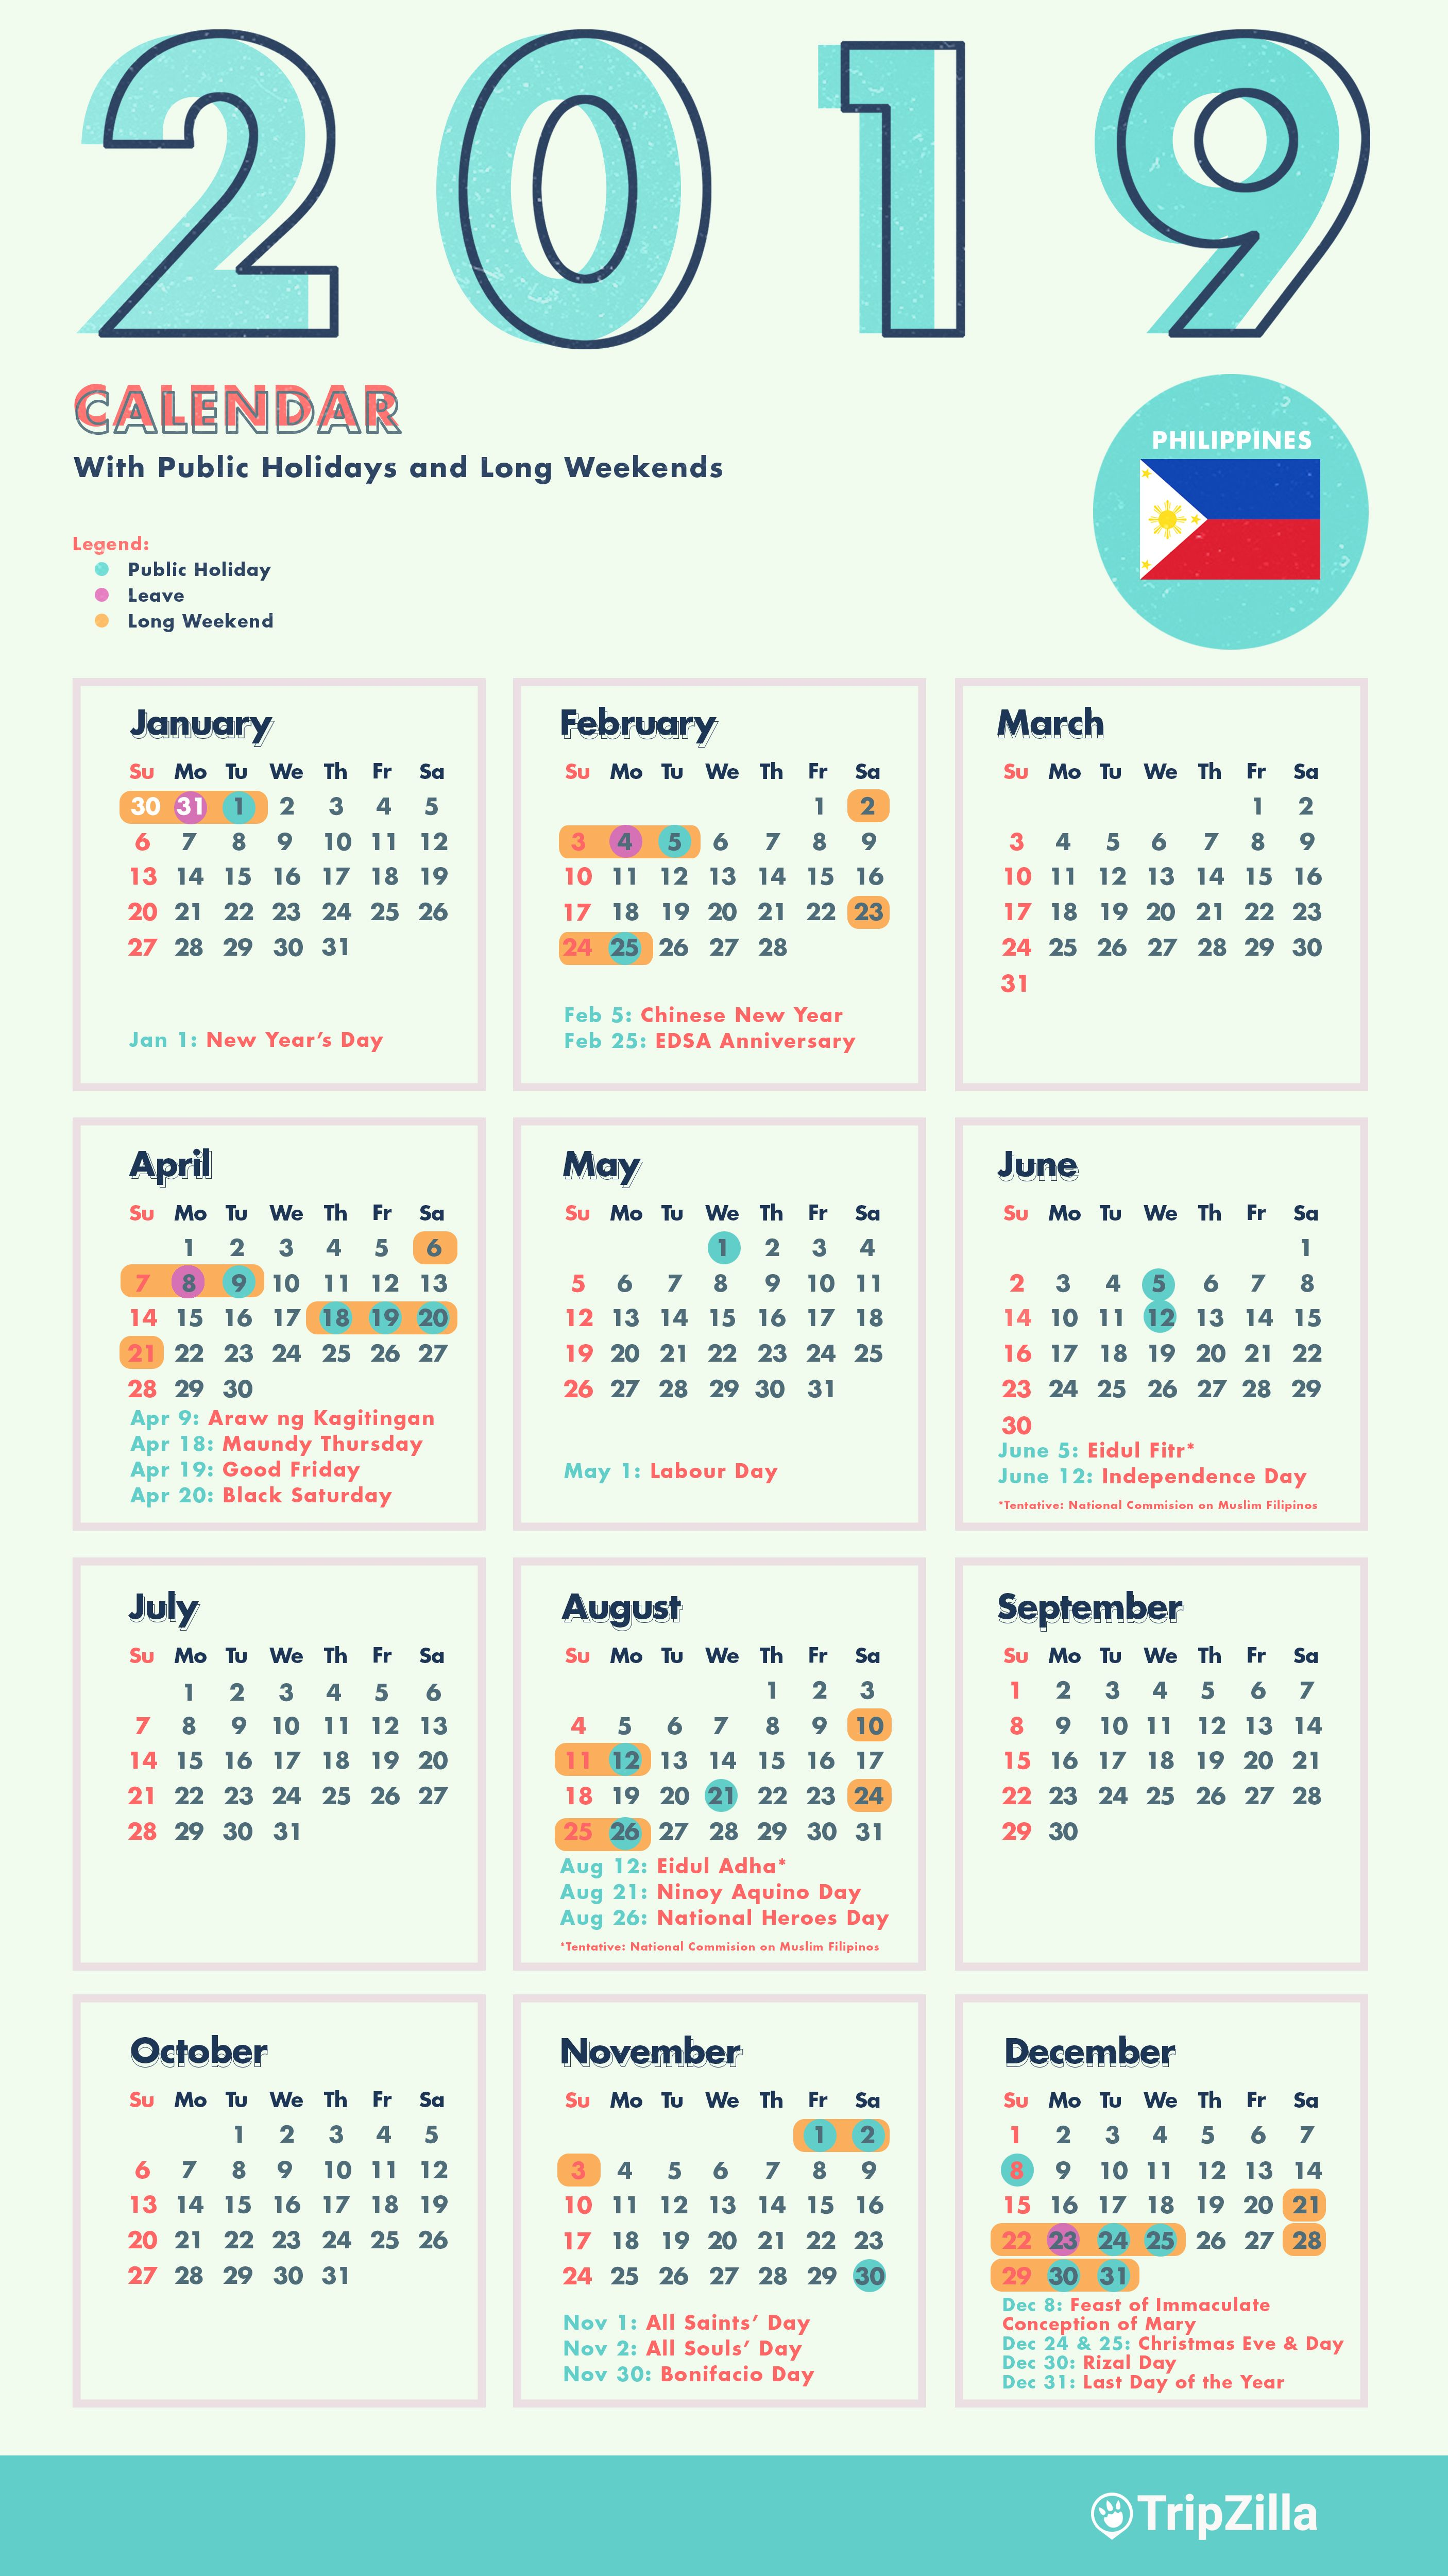 Calendar 2019 Holidays Philippines With 10 Long Weekends